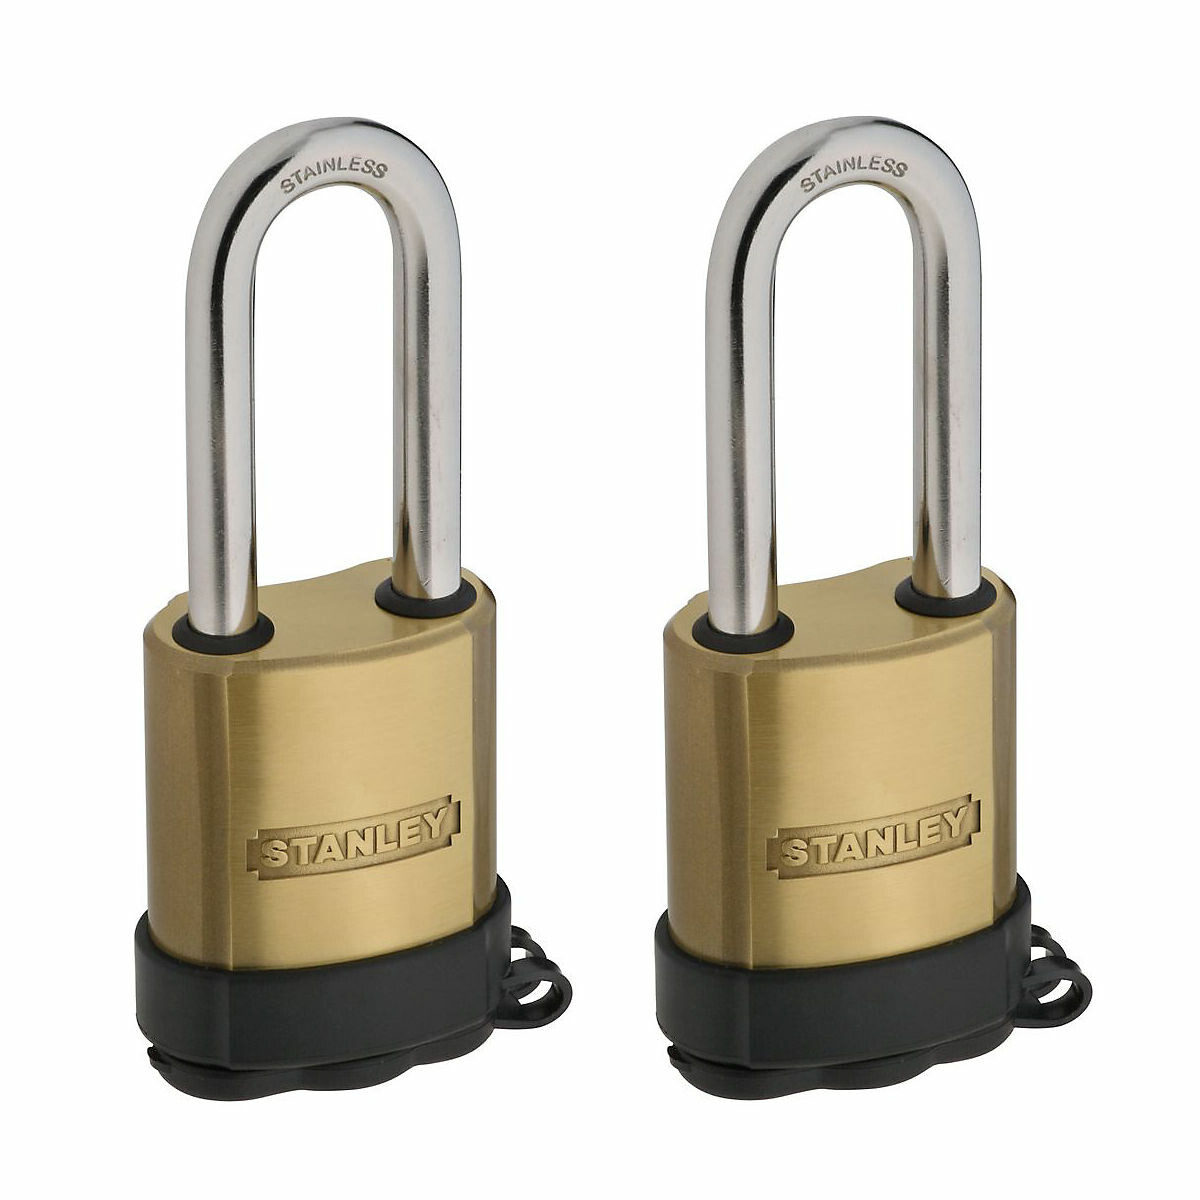 Stanley Hardware S828-210 CD8822 All-Weather Padlock in Solid Brass 2 pack